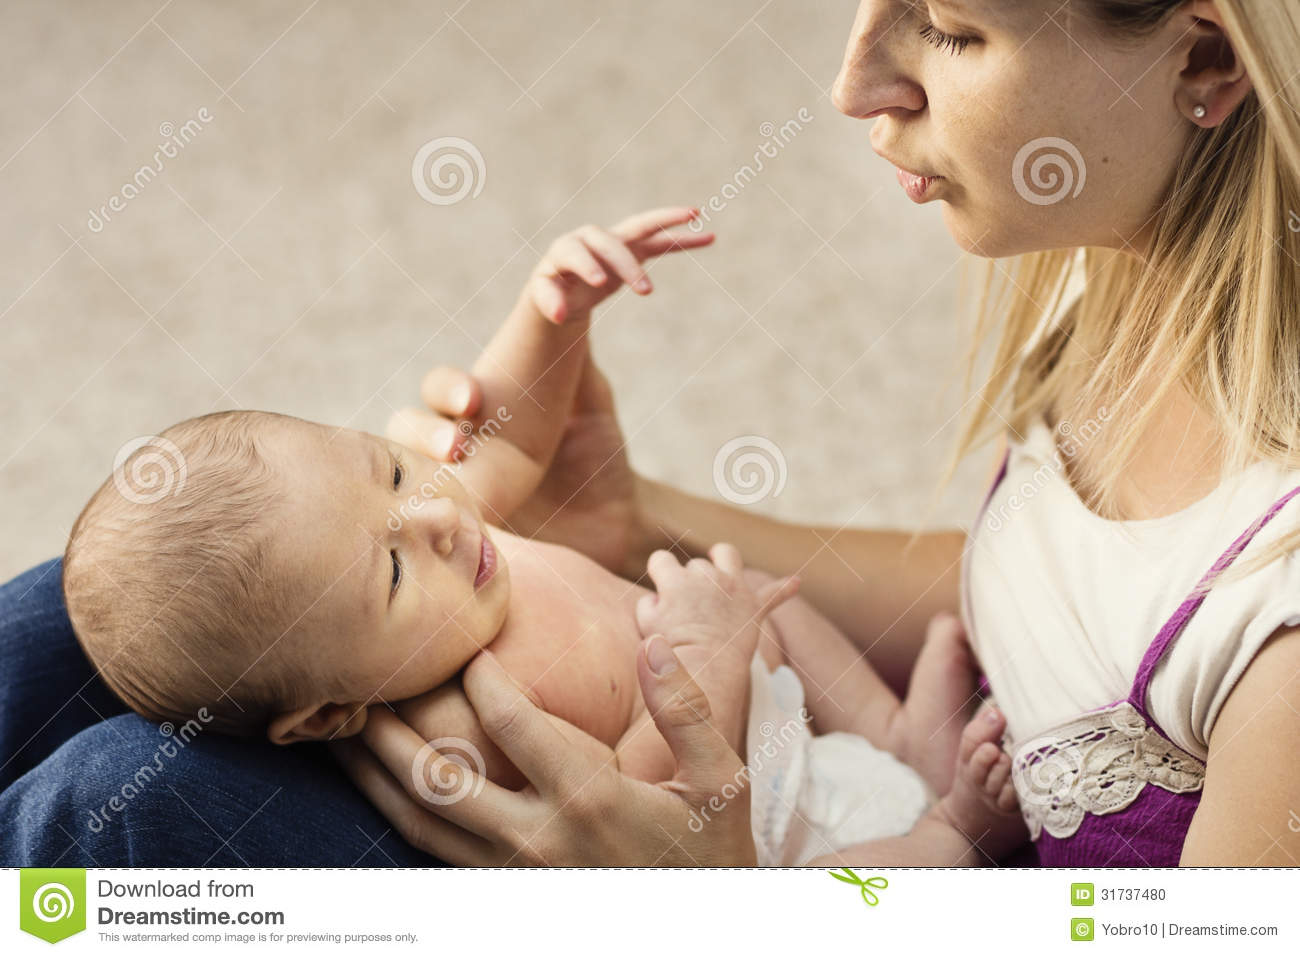 Mother caring for small baby